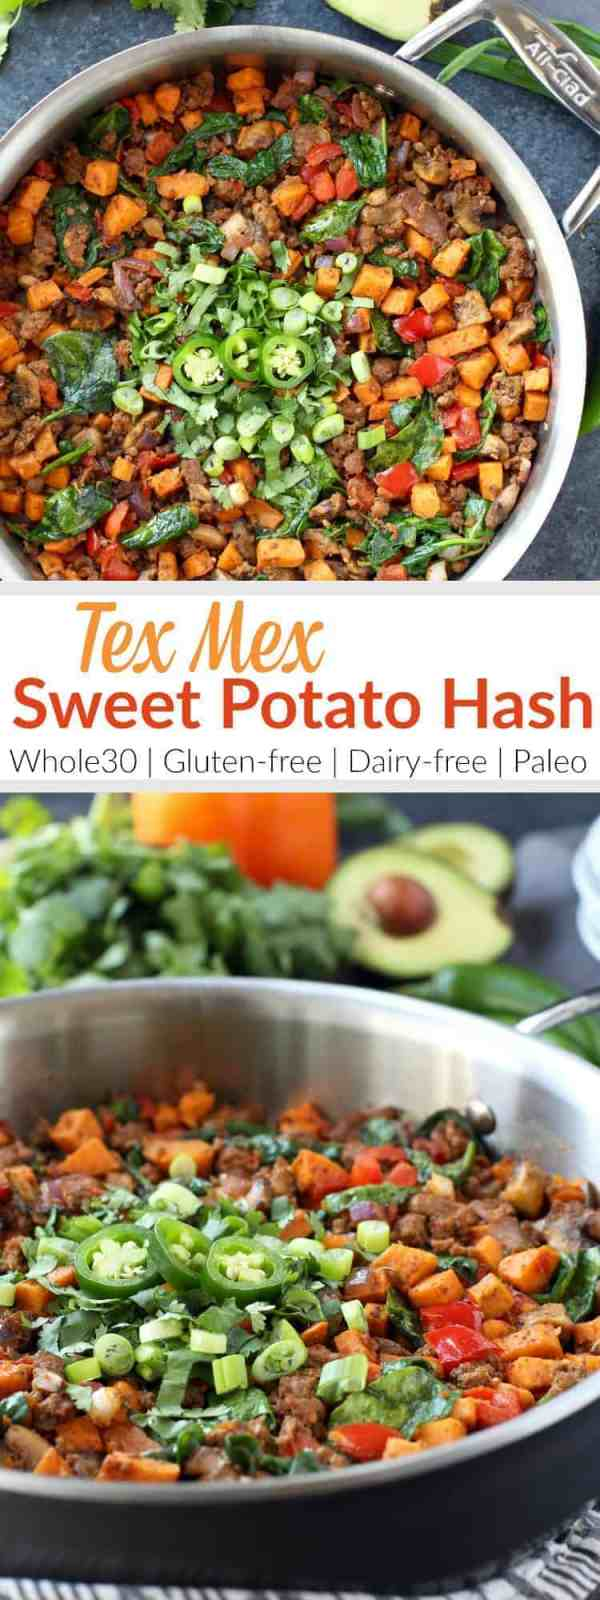 Make good use of taco meat leftovers by giving this easy Sweet Potato Tex Mex Hash recipe a try. A tasty Whole30 and egg-free breakfast option.| https://therealfoodrds.com/tex-mex-sweet-potato-hash/